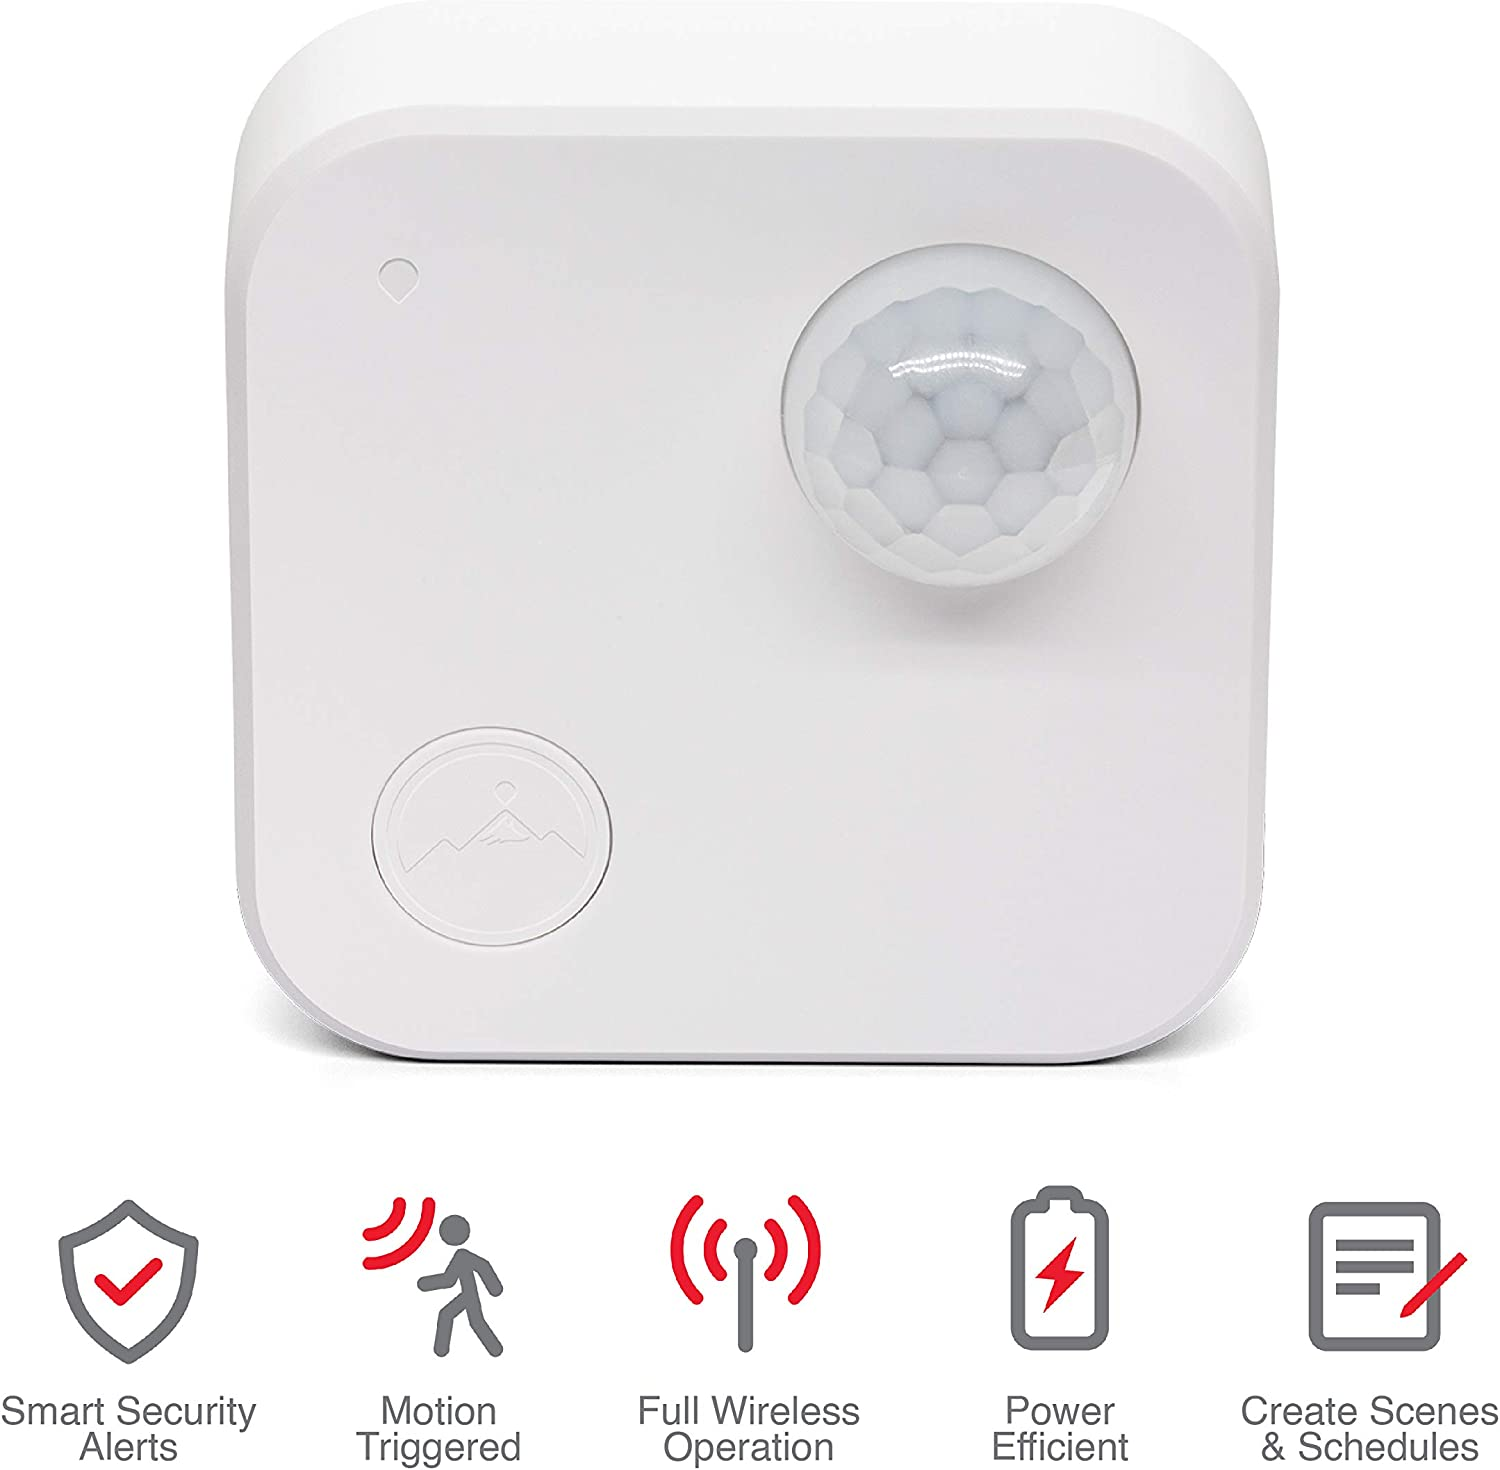 Fox Summit WiFi Indoor Motion Sensor, WiFi Enabled Battery Operated Smart Sensor, Home Security Motion Detector, No Hub Required 4PK